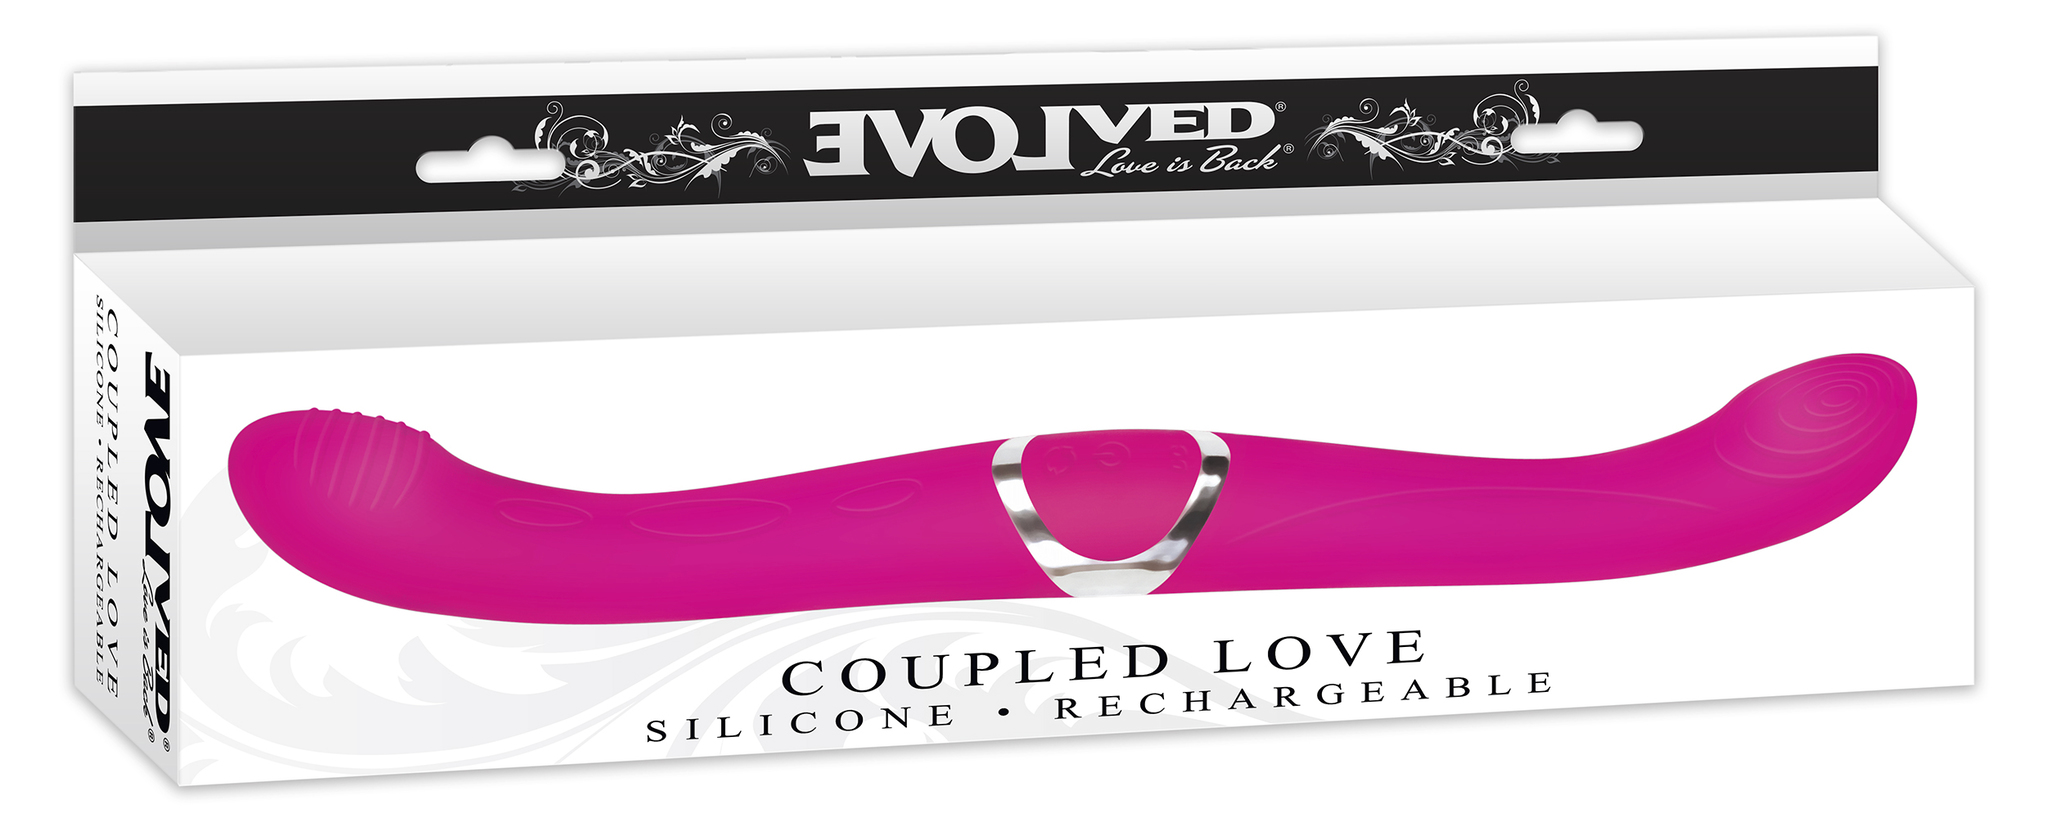 COUPLED LOVE - SILICONE RECHARGEABLE